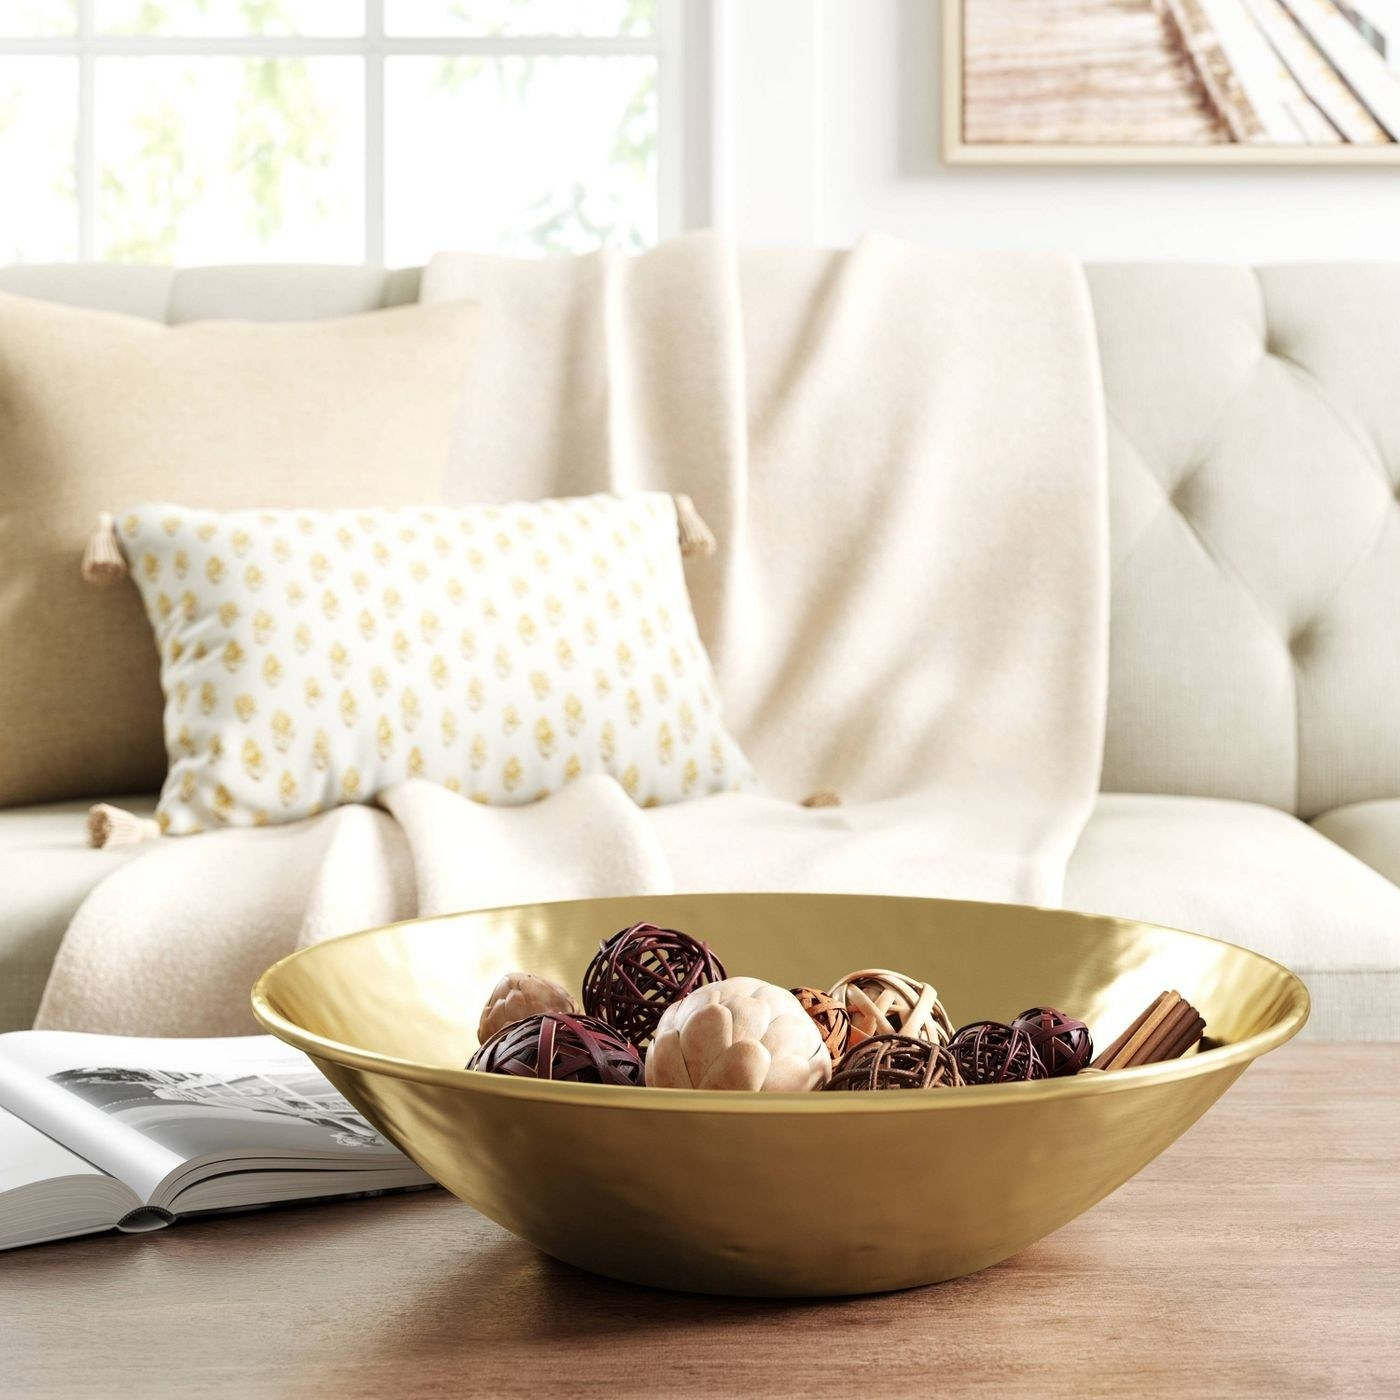 gold decorative bowl on a table